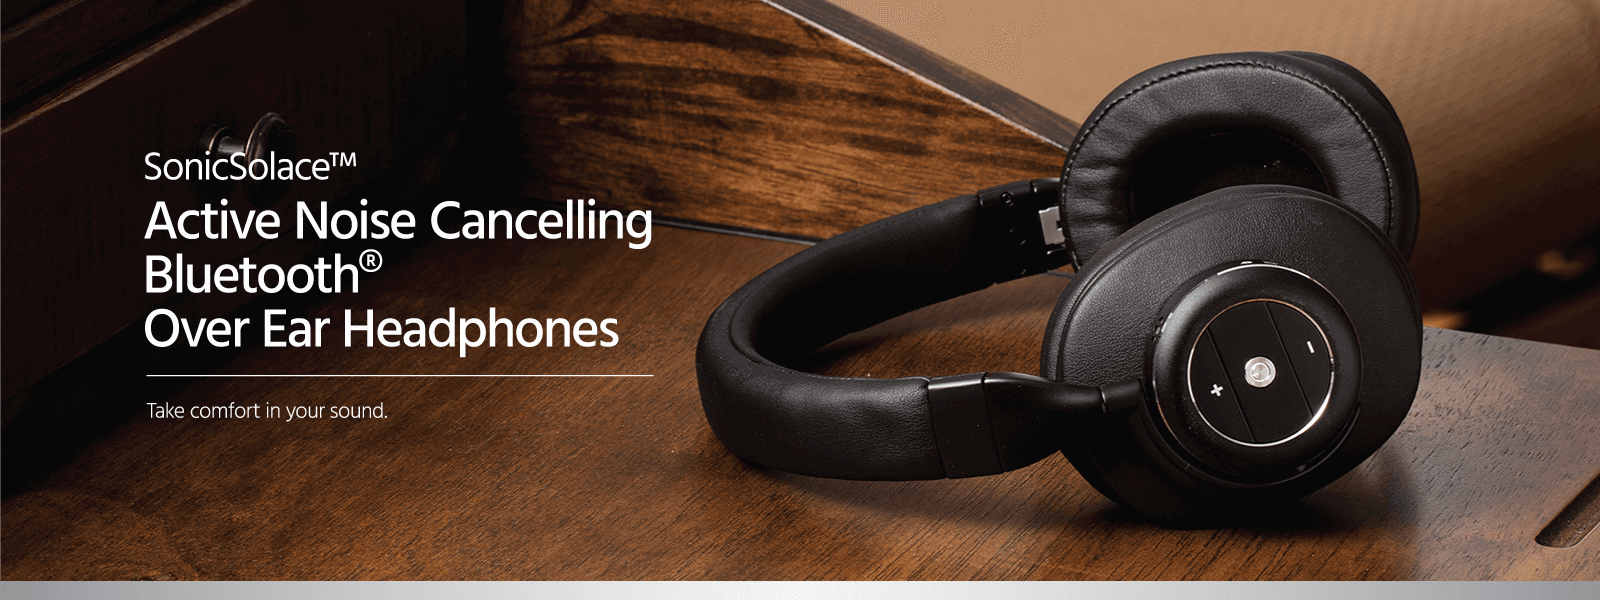 ANC Bluetooth Over Ear Headphones